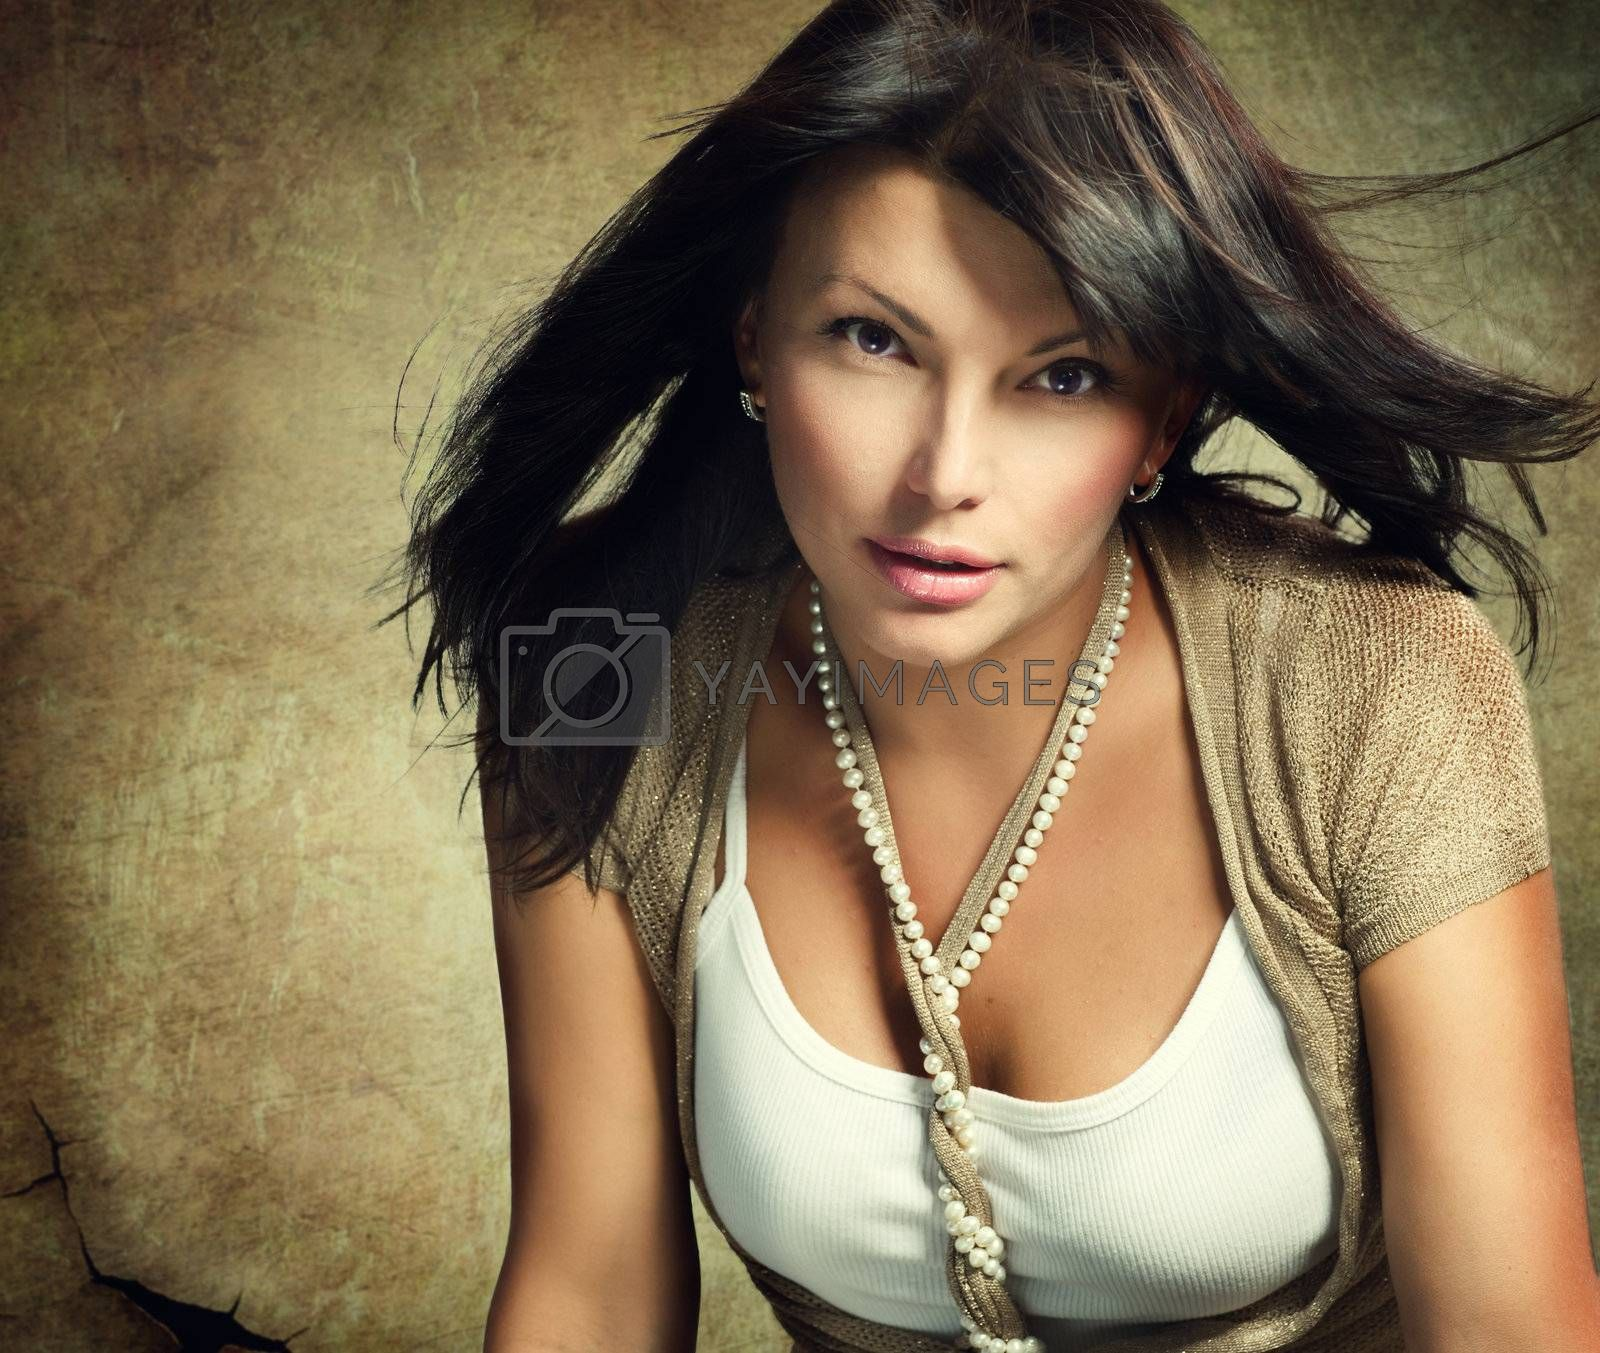 Sexy Young Woman portrait